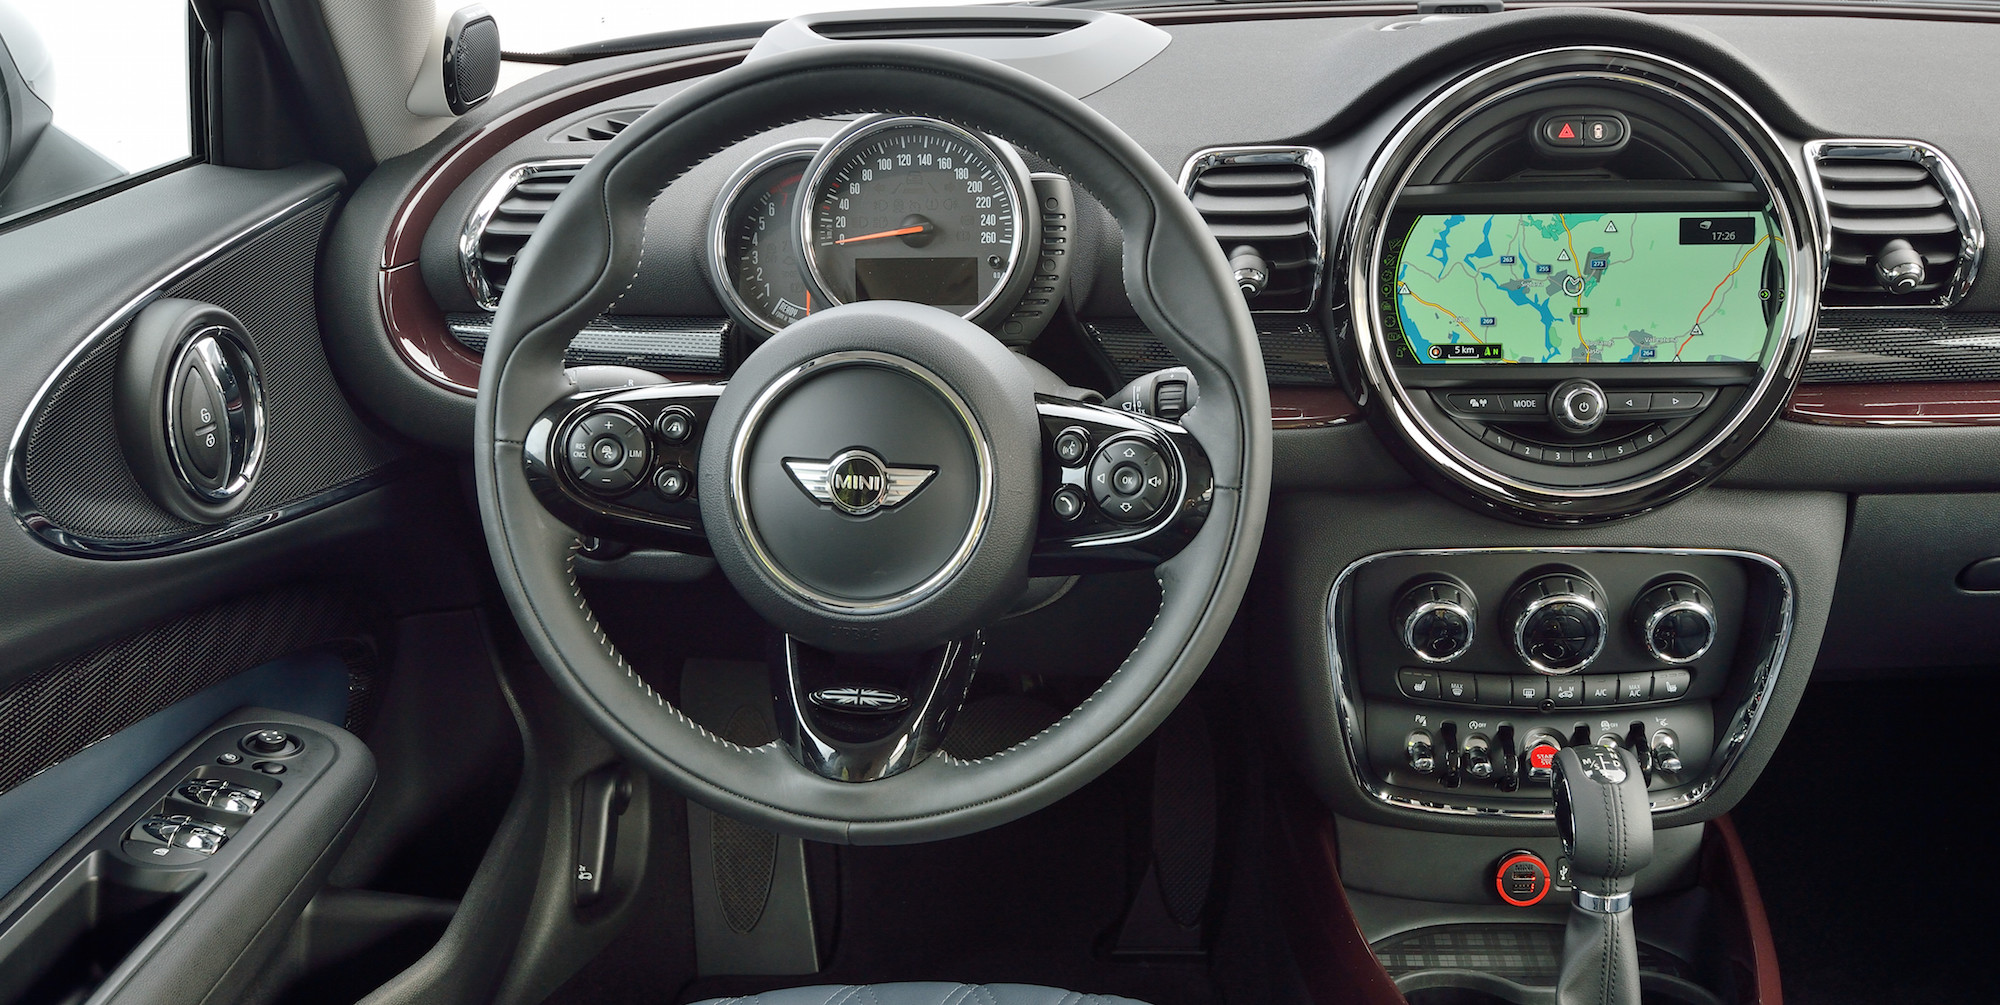 2016 Mini Cooper S Clubman Cockpit Interior (View 10 of 17)